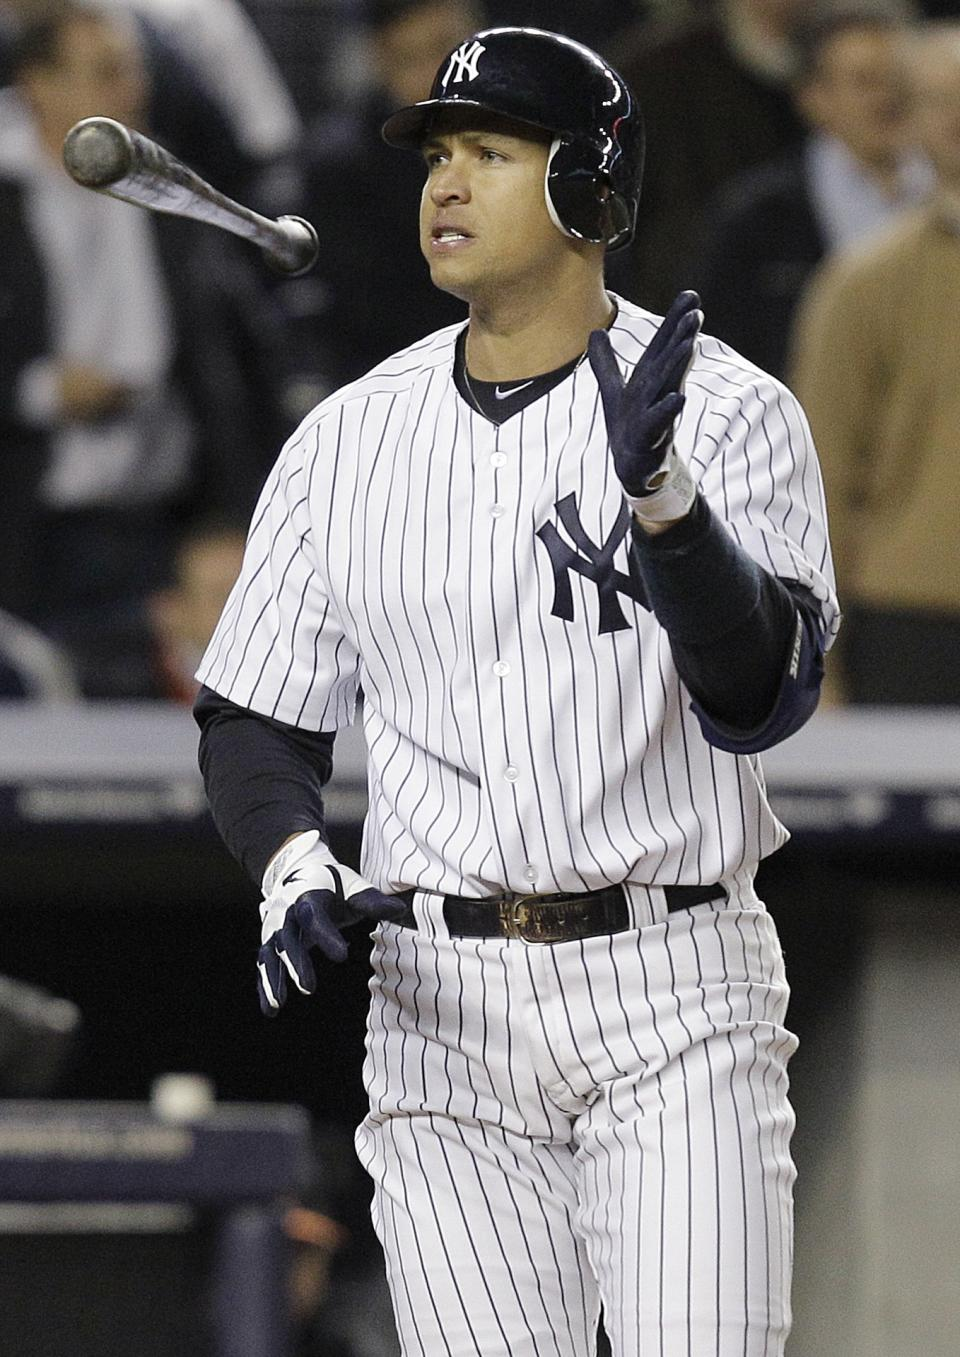 New York Yankees' Alex Rodriguez tosses his bat after striking out to end the sixth inning of Game 4 of the American League division baseball series against the Baltimore Orioles, Thursday, Oct. 11, 2012, in New York. (AP Photo/Kathy Willens)